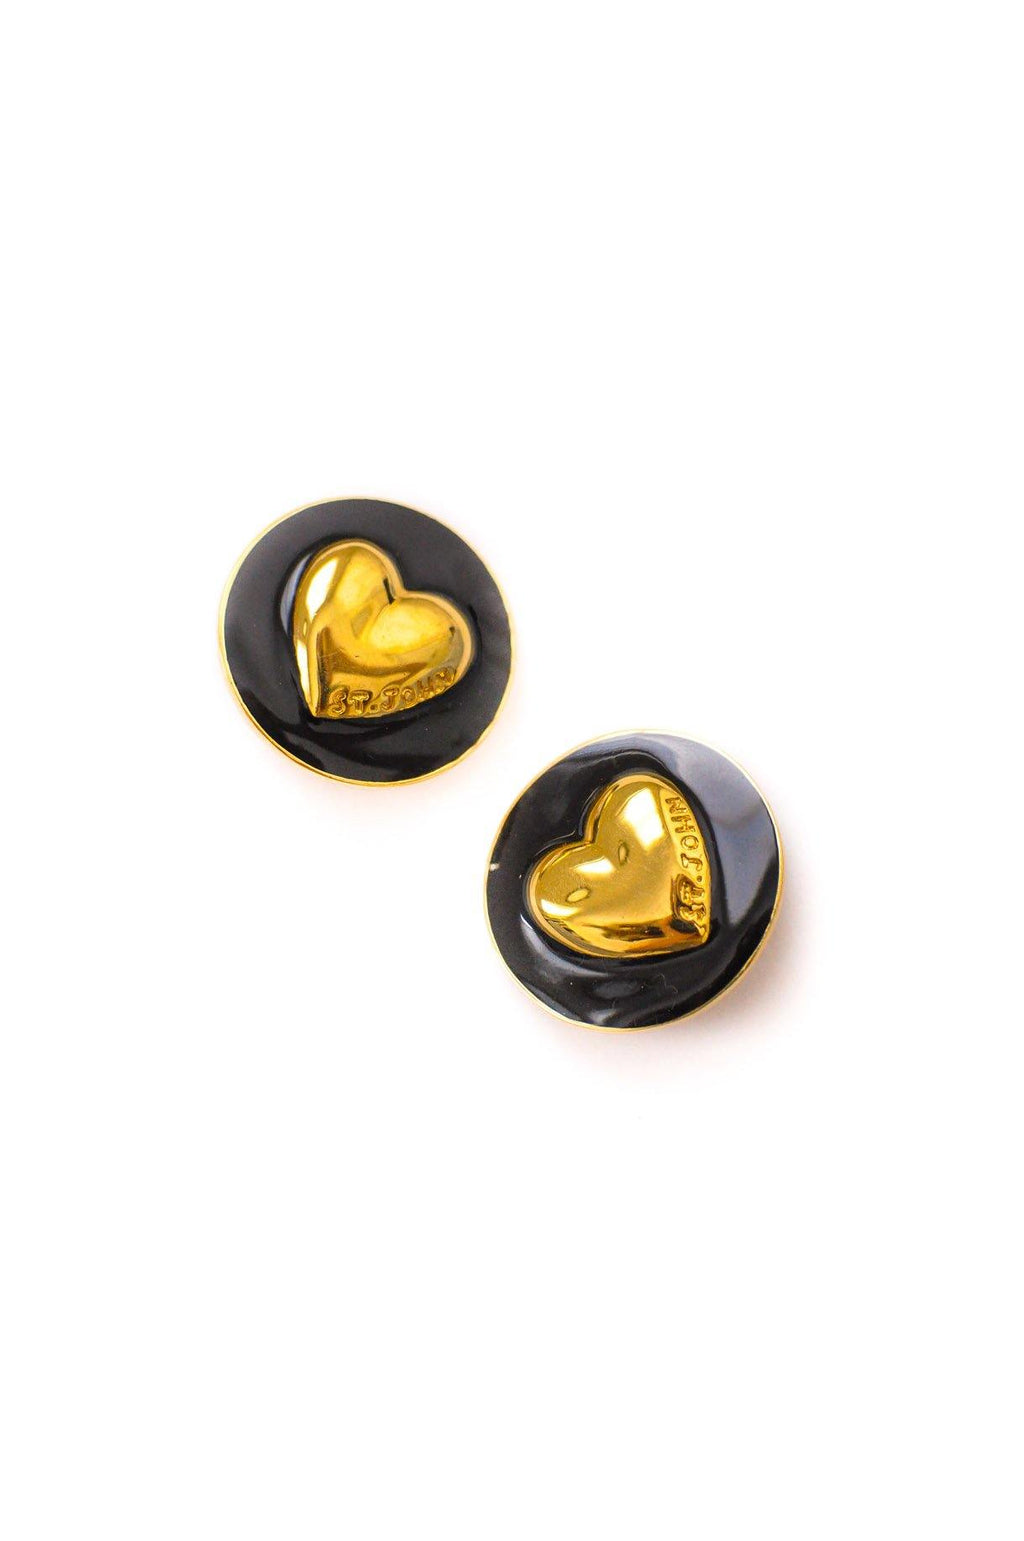 St. John Heart Coin Clip-on Earrings